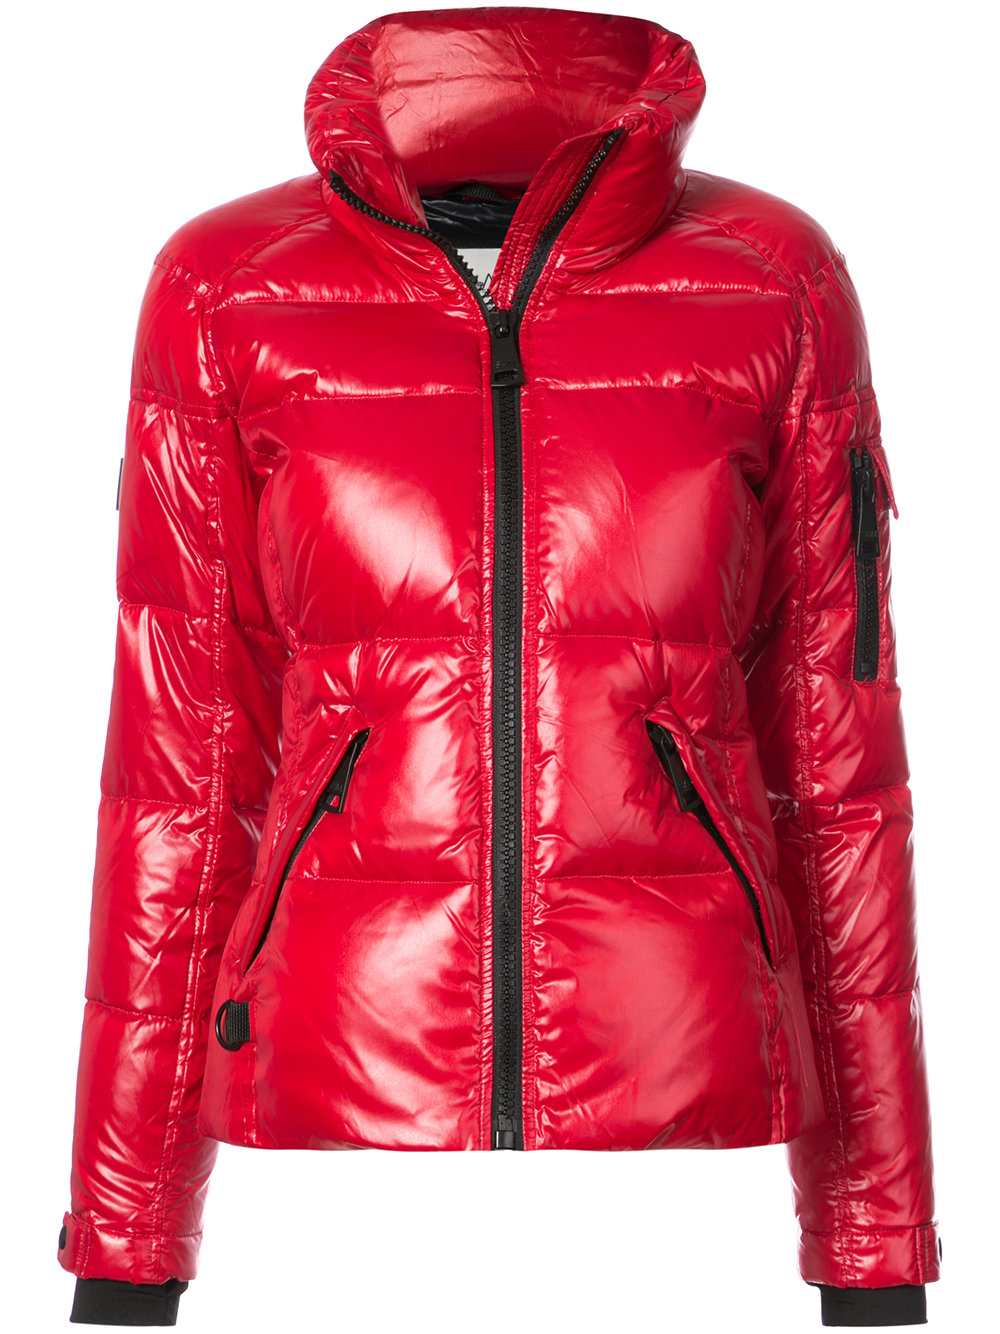 SAM. quilted jacket - $295